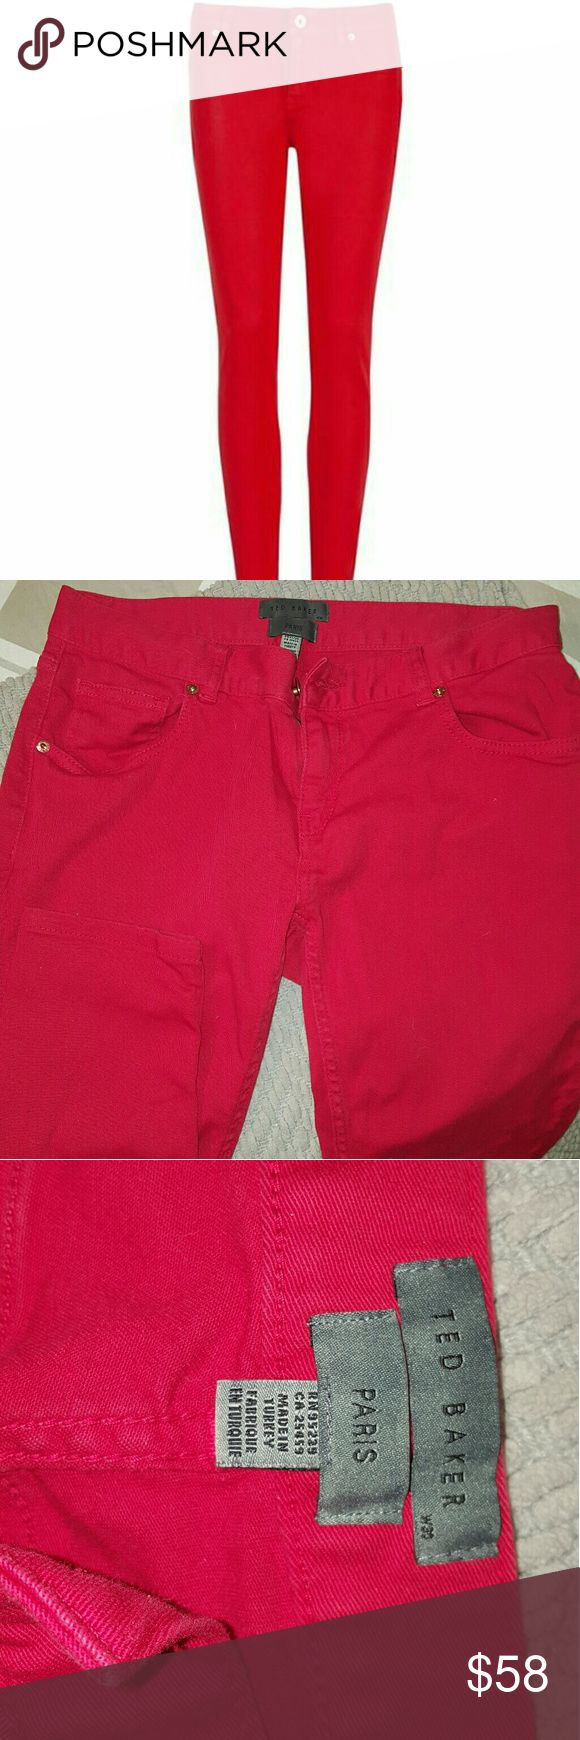 Ted Baker Red Cubba Skinny Jeans Ted Baker Women's Red Cubba Skinny Jeans  Barely warn. I don't fit in them anymore.   30 W 28 L Ted Baker Pants Skinny